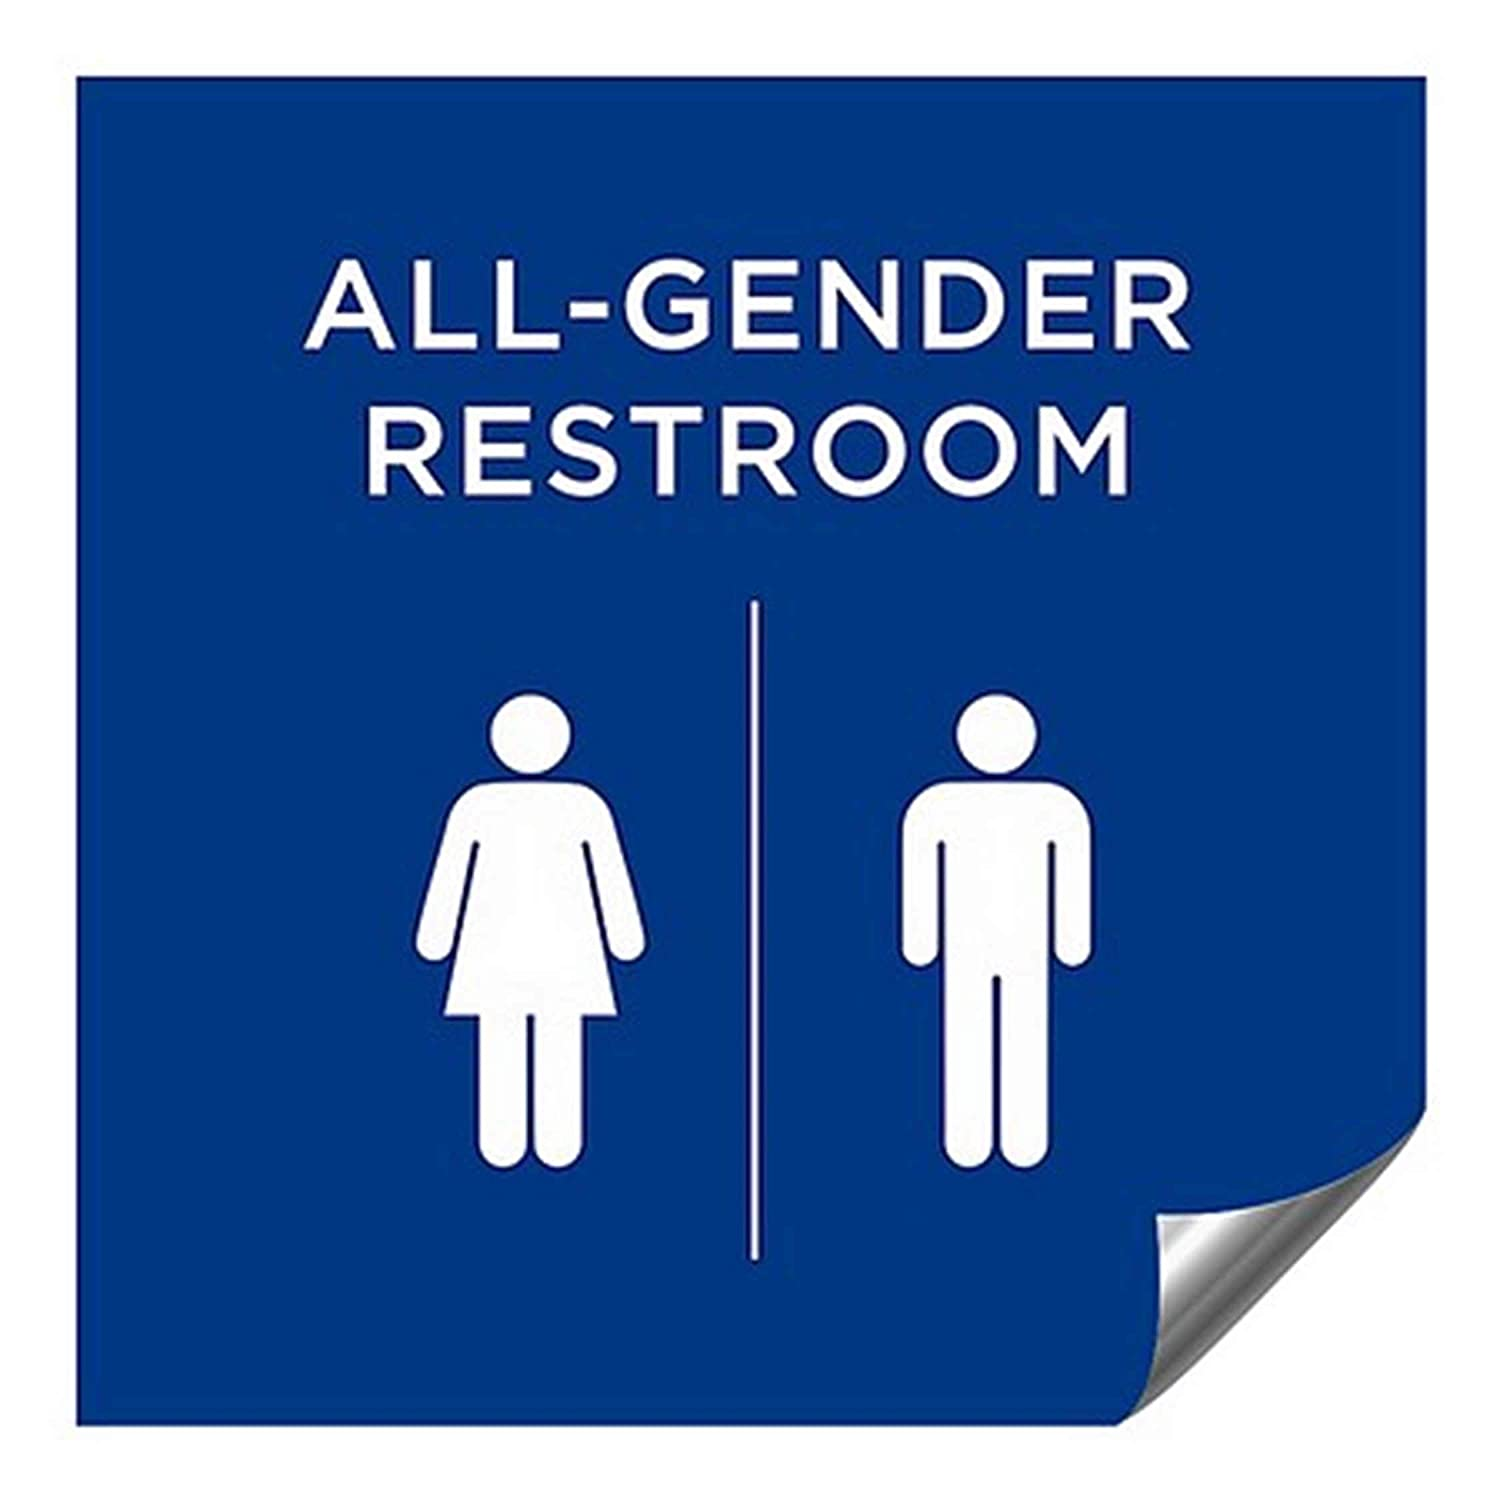 CGSignLab 2439178_5gfxa_24x24_None OFFicial shop All-Gender Price reduction Restroom Sign in B